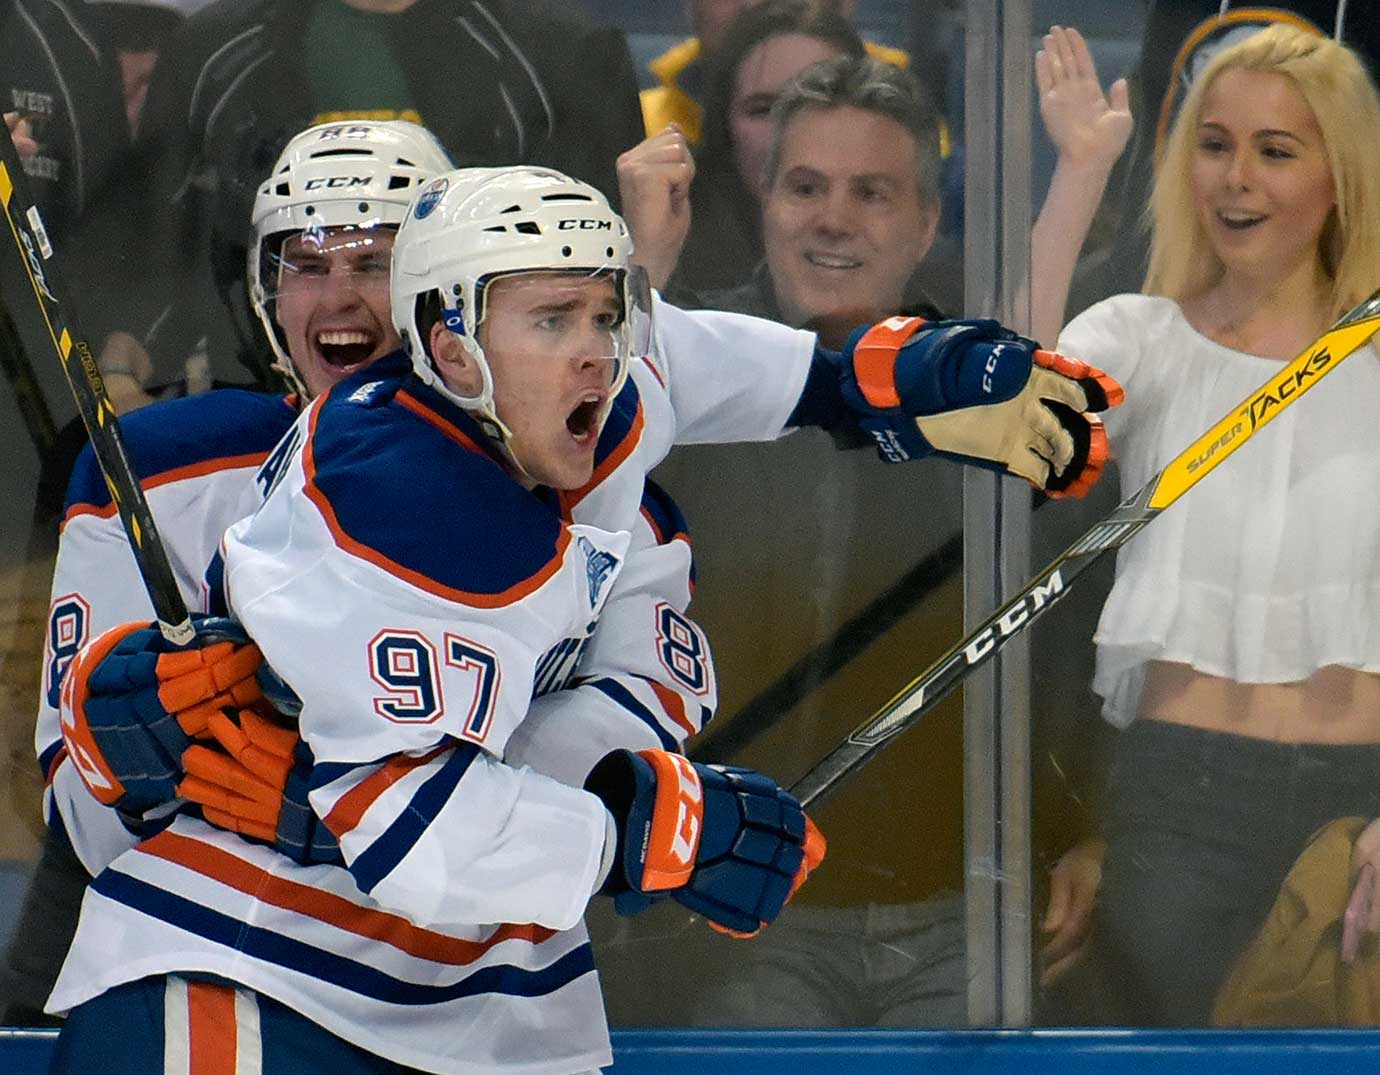 Brandon Davidson, left, celebrates with Connor McDavid after the latter scored in OT to give Edmonton a 2-1 win at Buffalo.